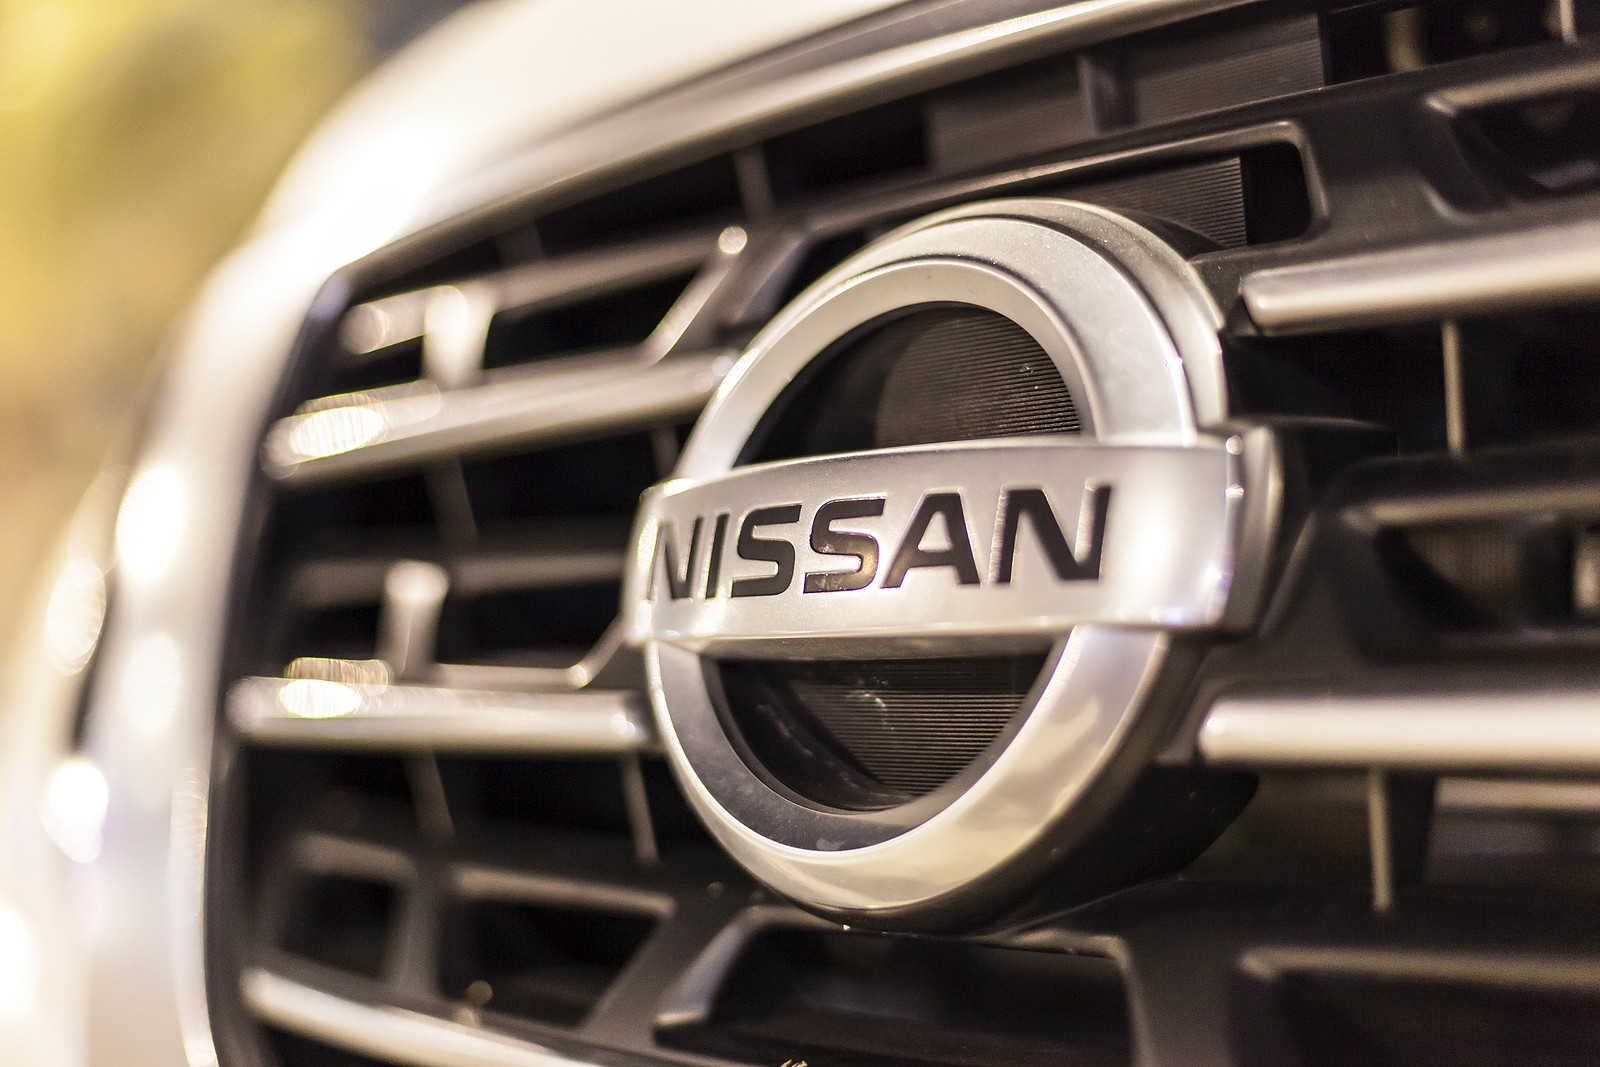 2016 Nissan Altima Transmission Problems – Watch Out For Delayed Shifting!